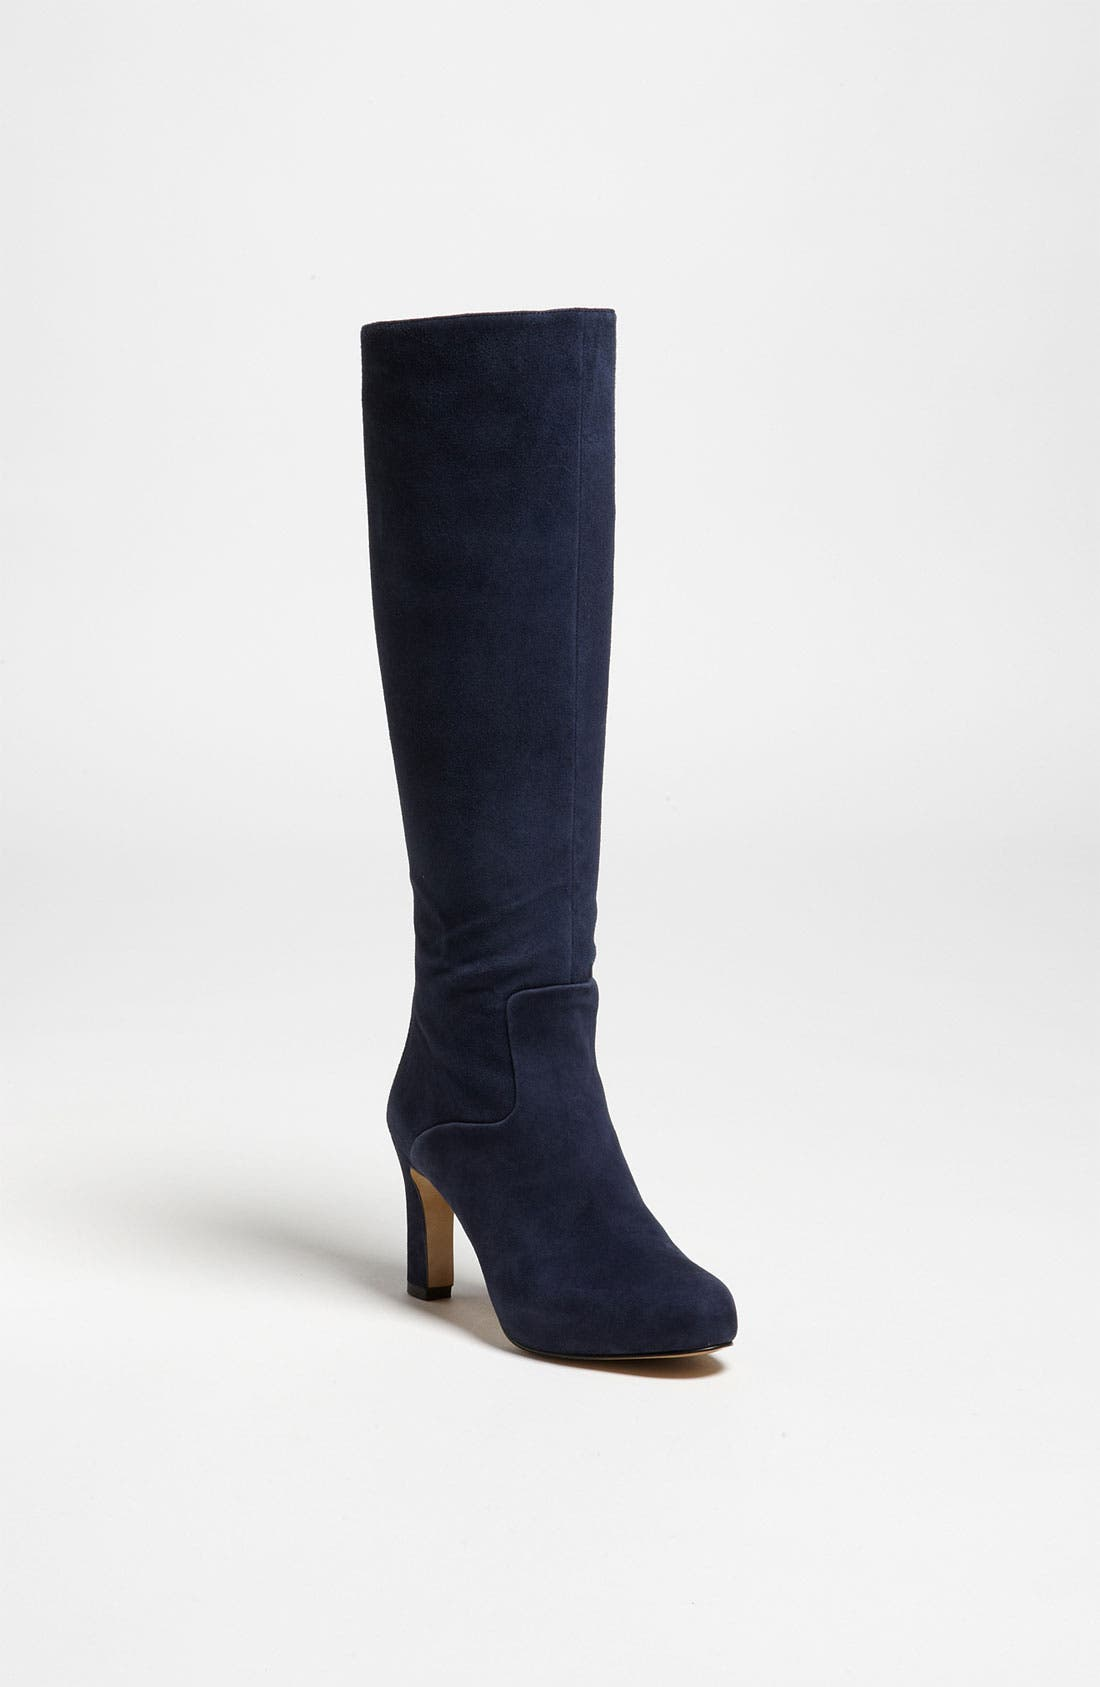 Alternate Image 1 Selected - Nine West 'Numberone' Boot (Online Exclusive)